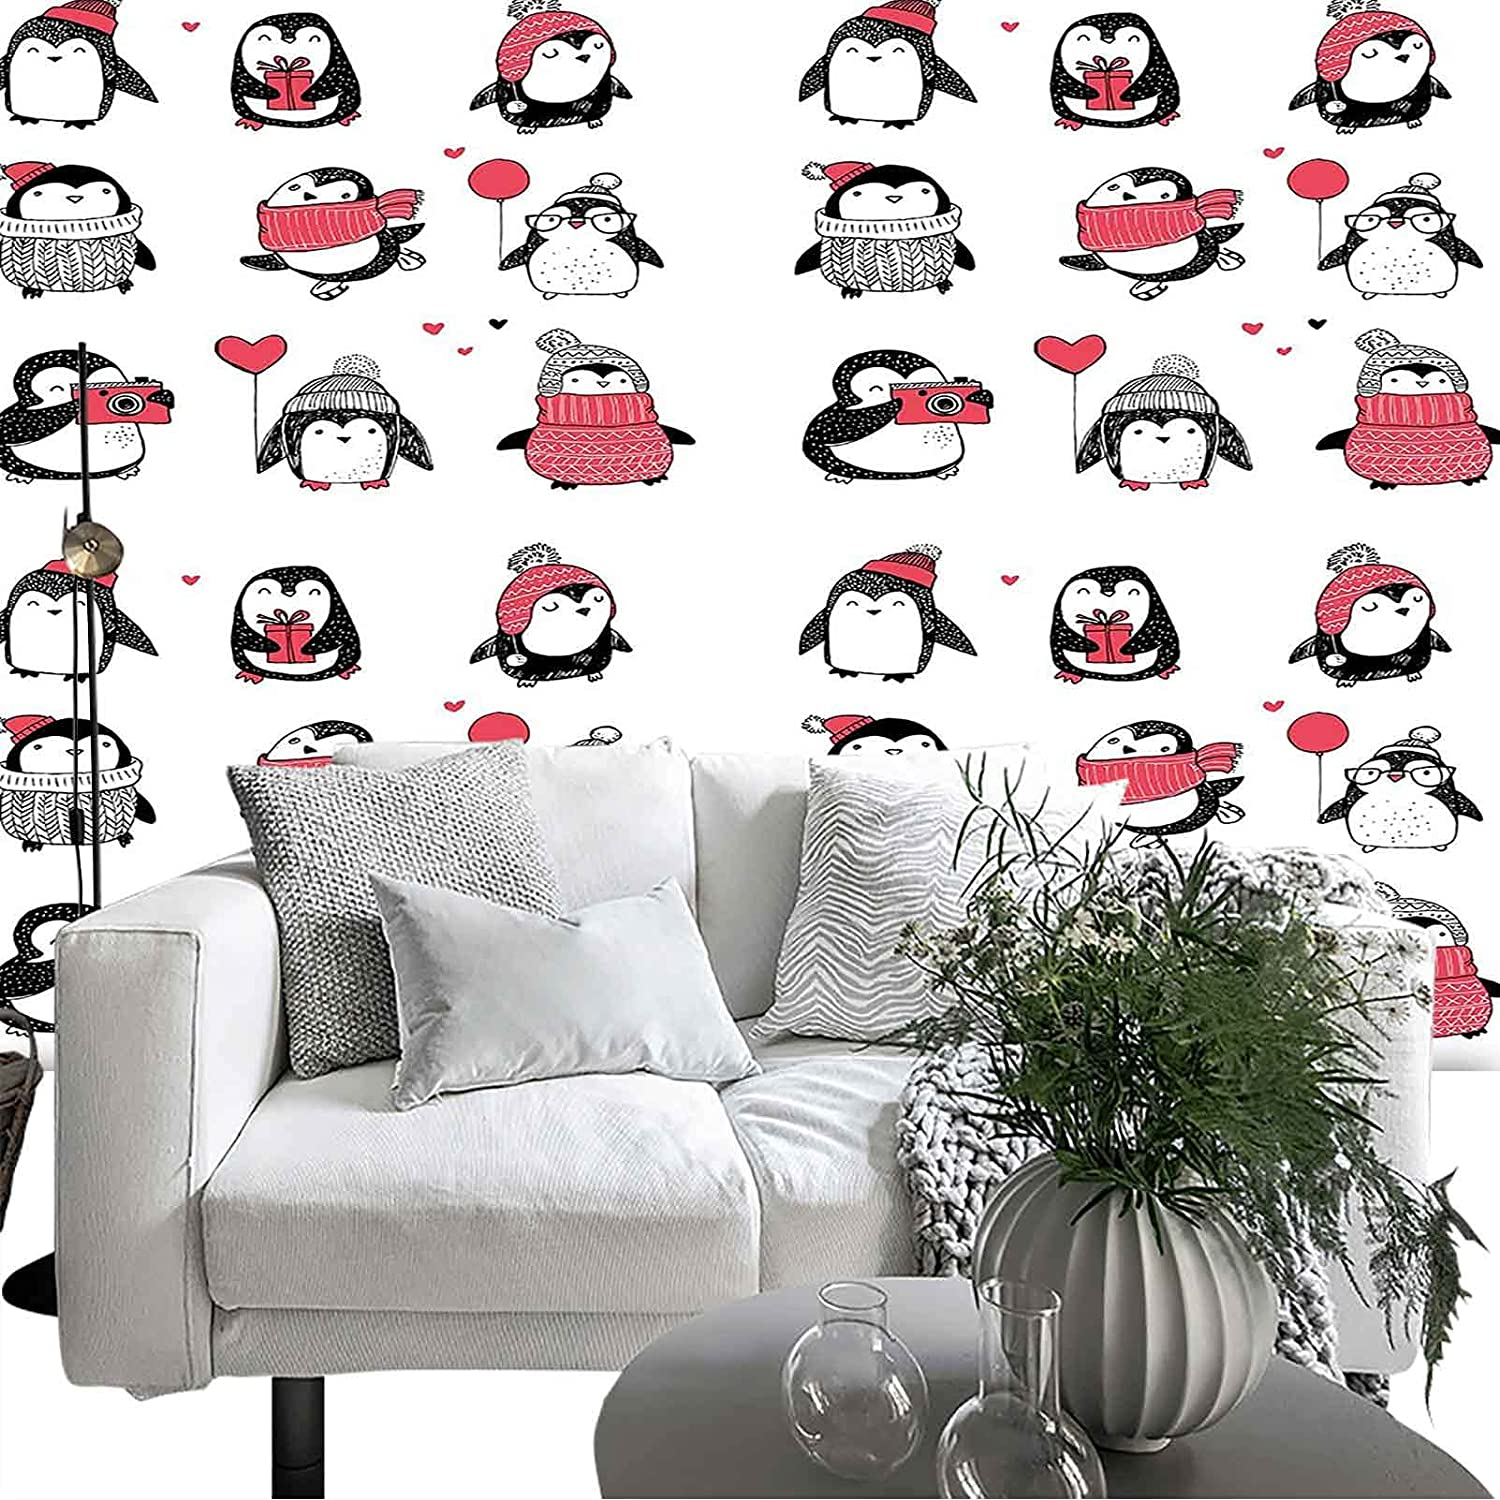 Jacksonville Mall Removable Self-Adhesive Winter Cute Penguins Hand Style Drawn Se Quantity limited